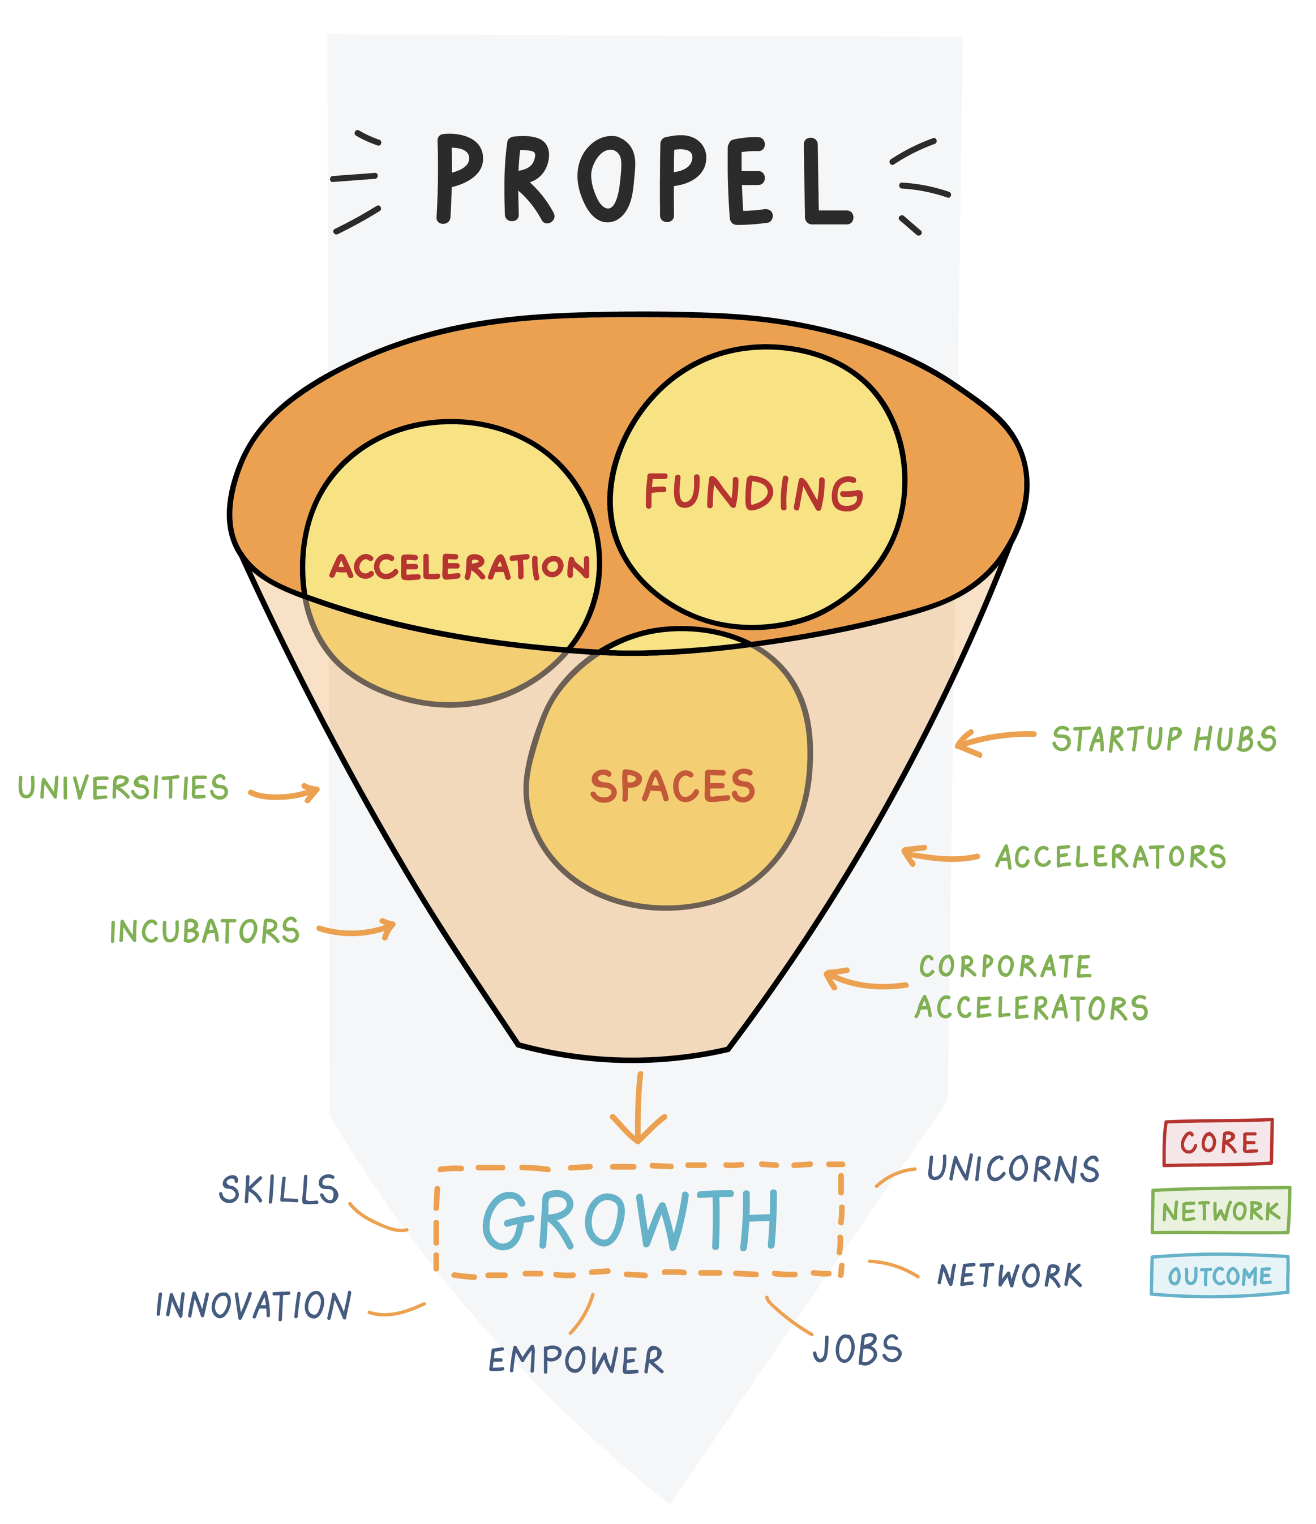 https://www.propel.africa/wp-content/uploads/2019/03/propel-funnel-drawing-1.png